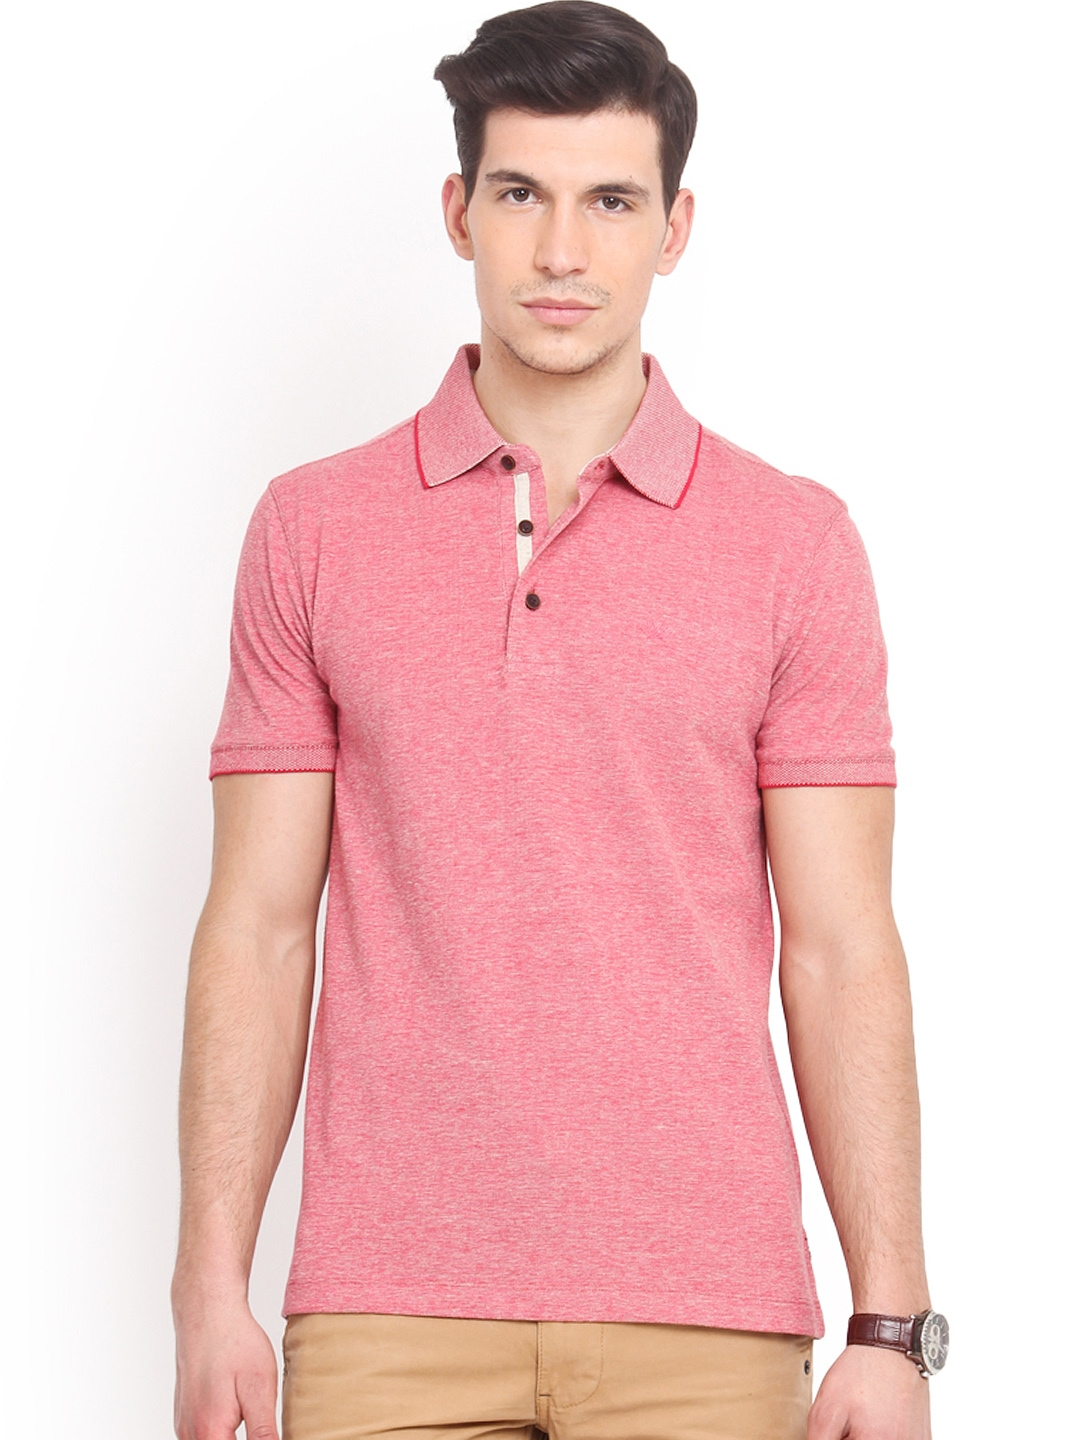 Myntra smokestack men pink custom fit polo t shirt 752904 for Custom fit t shirts